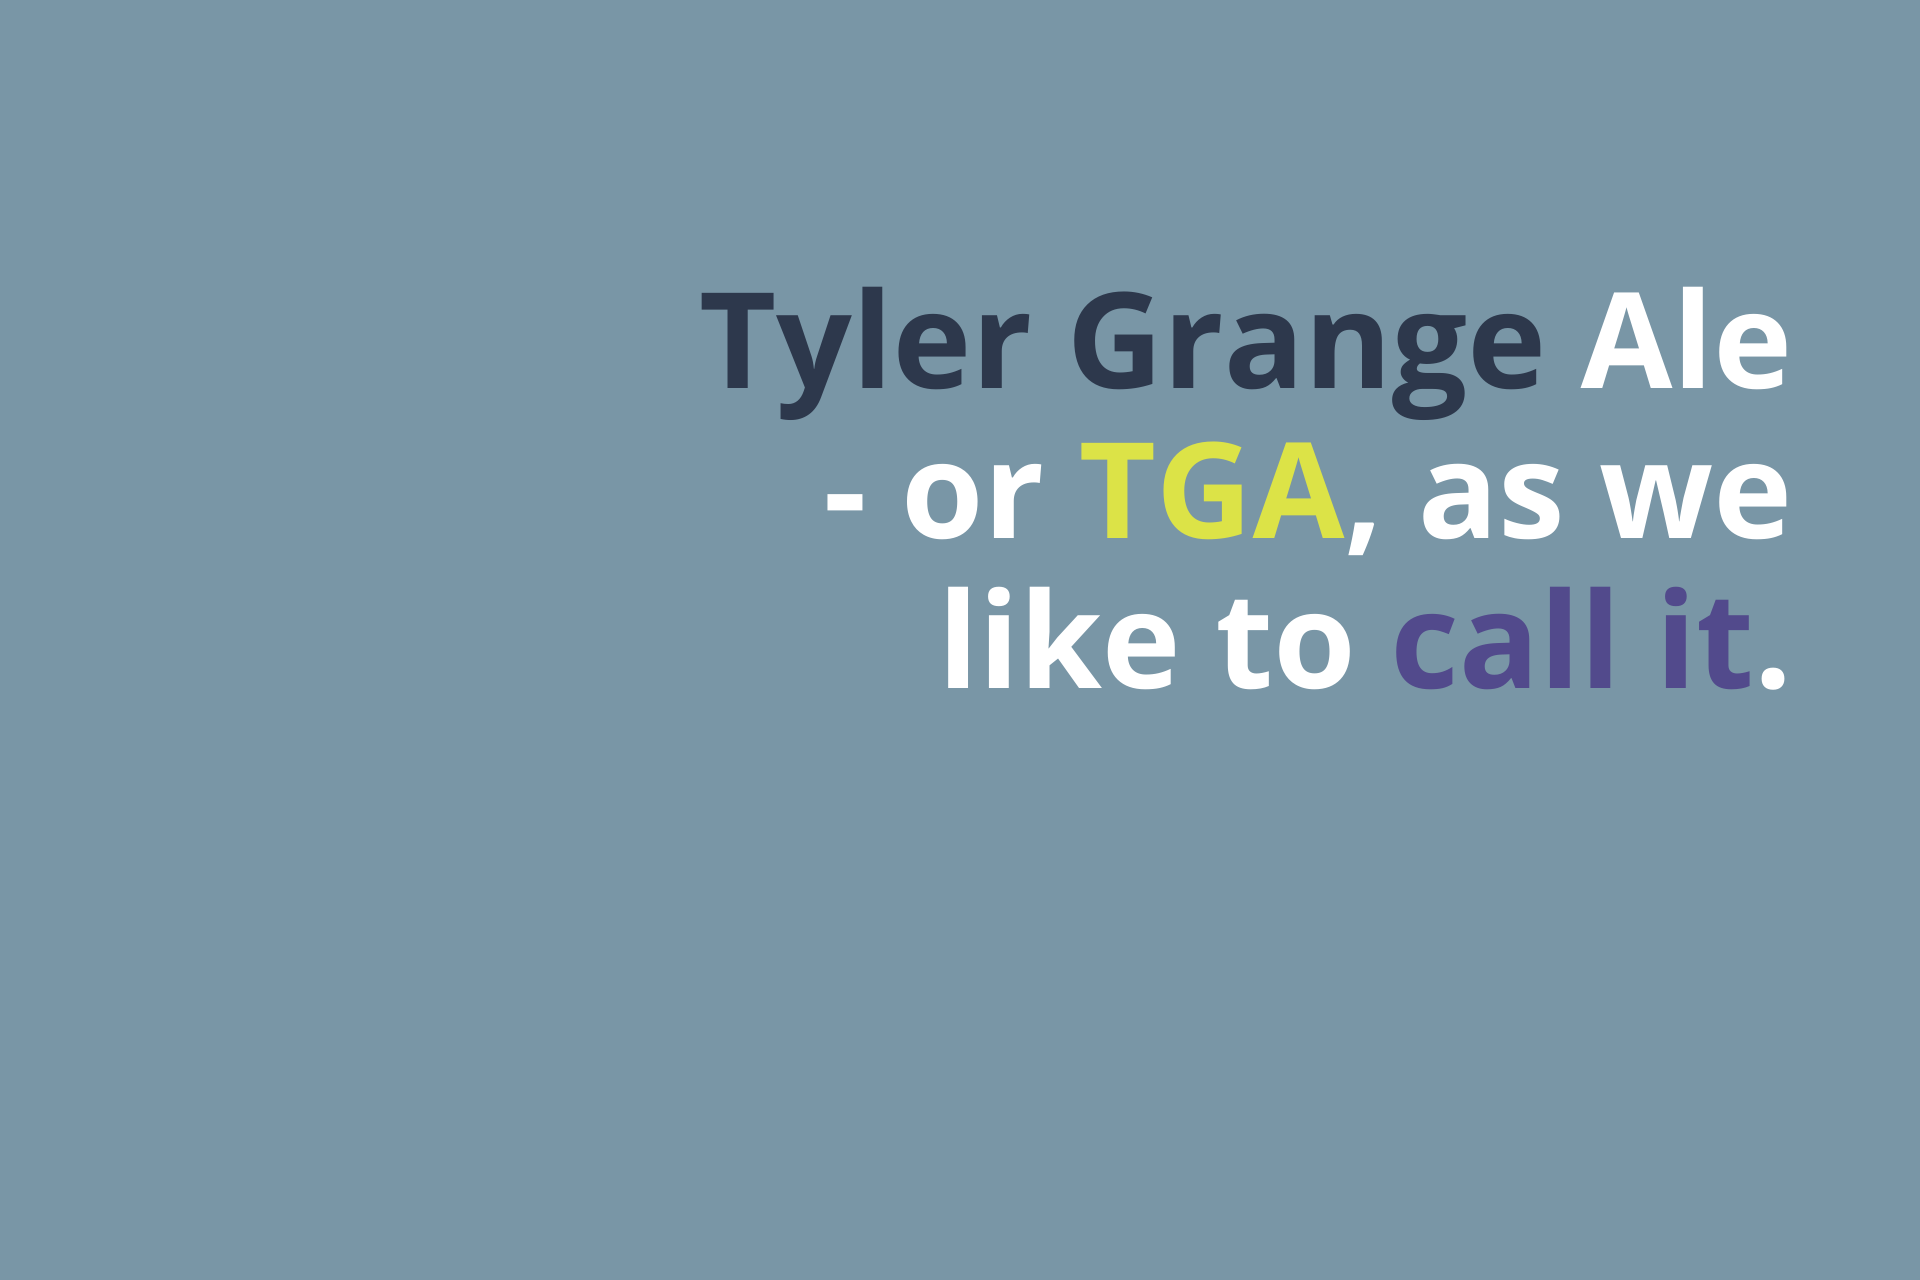 Tyler Grange Ale - or TGA as we like to call it